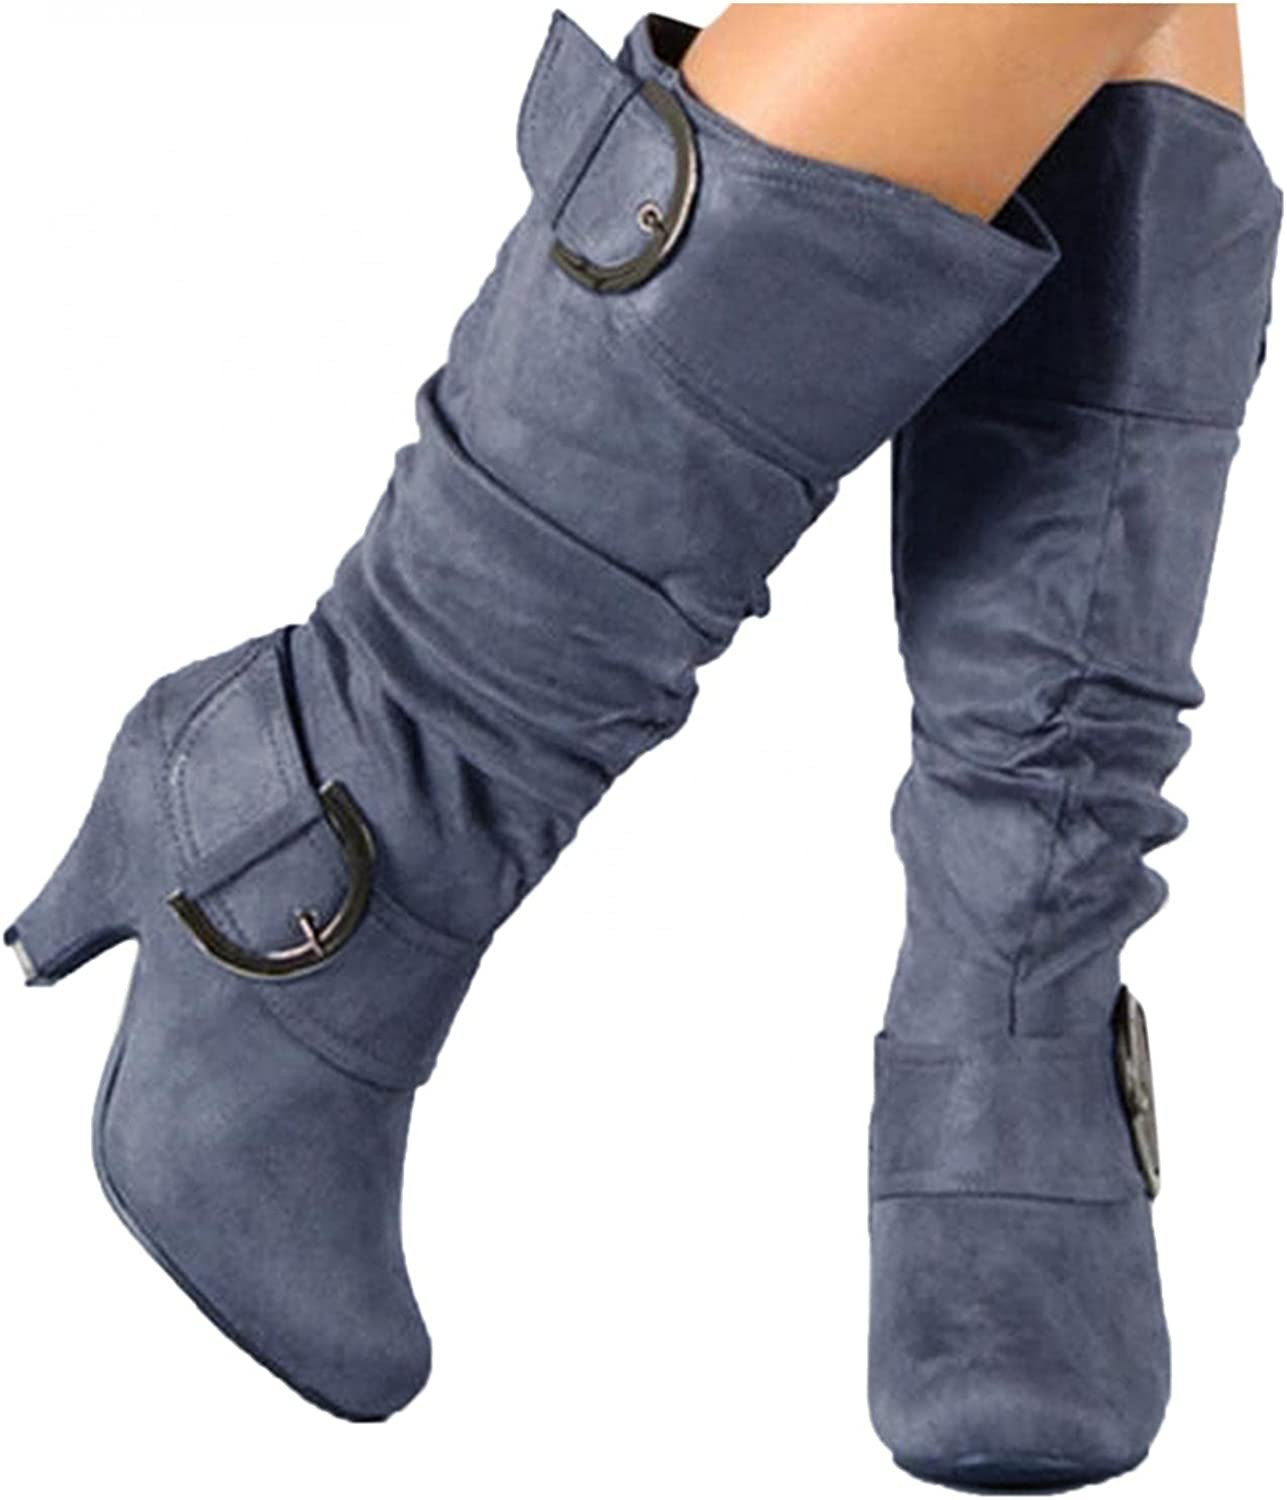 Zieglen Women's Winter Boots, Women's Boots with Buckle Tapered Heel Long Booties Western Boots Snow Boots Motorcycle Boots